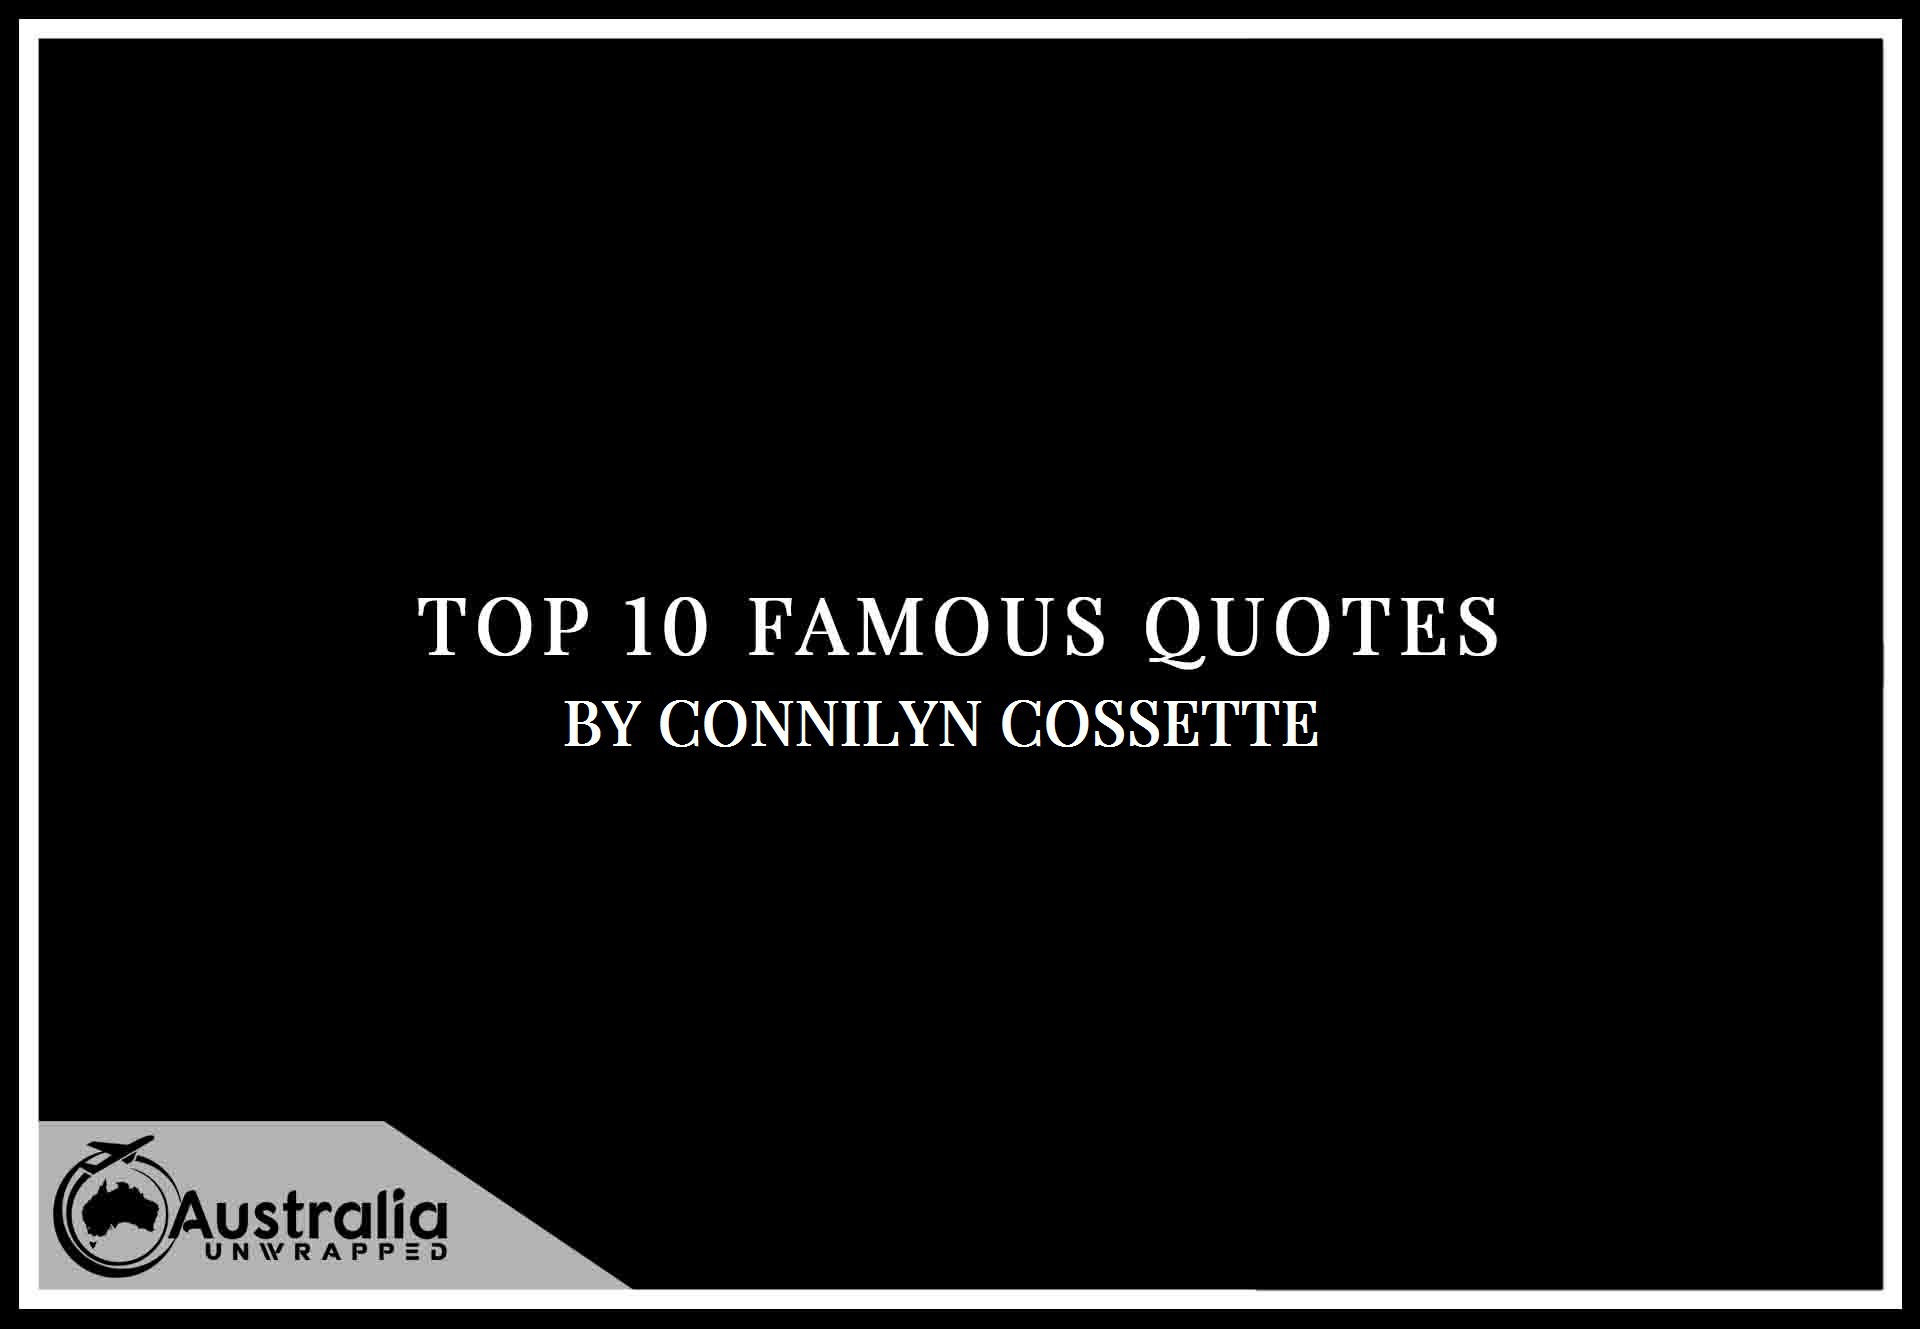 Connilyn Cossette's Top 10 Popular and Famous Quotes